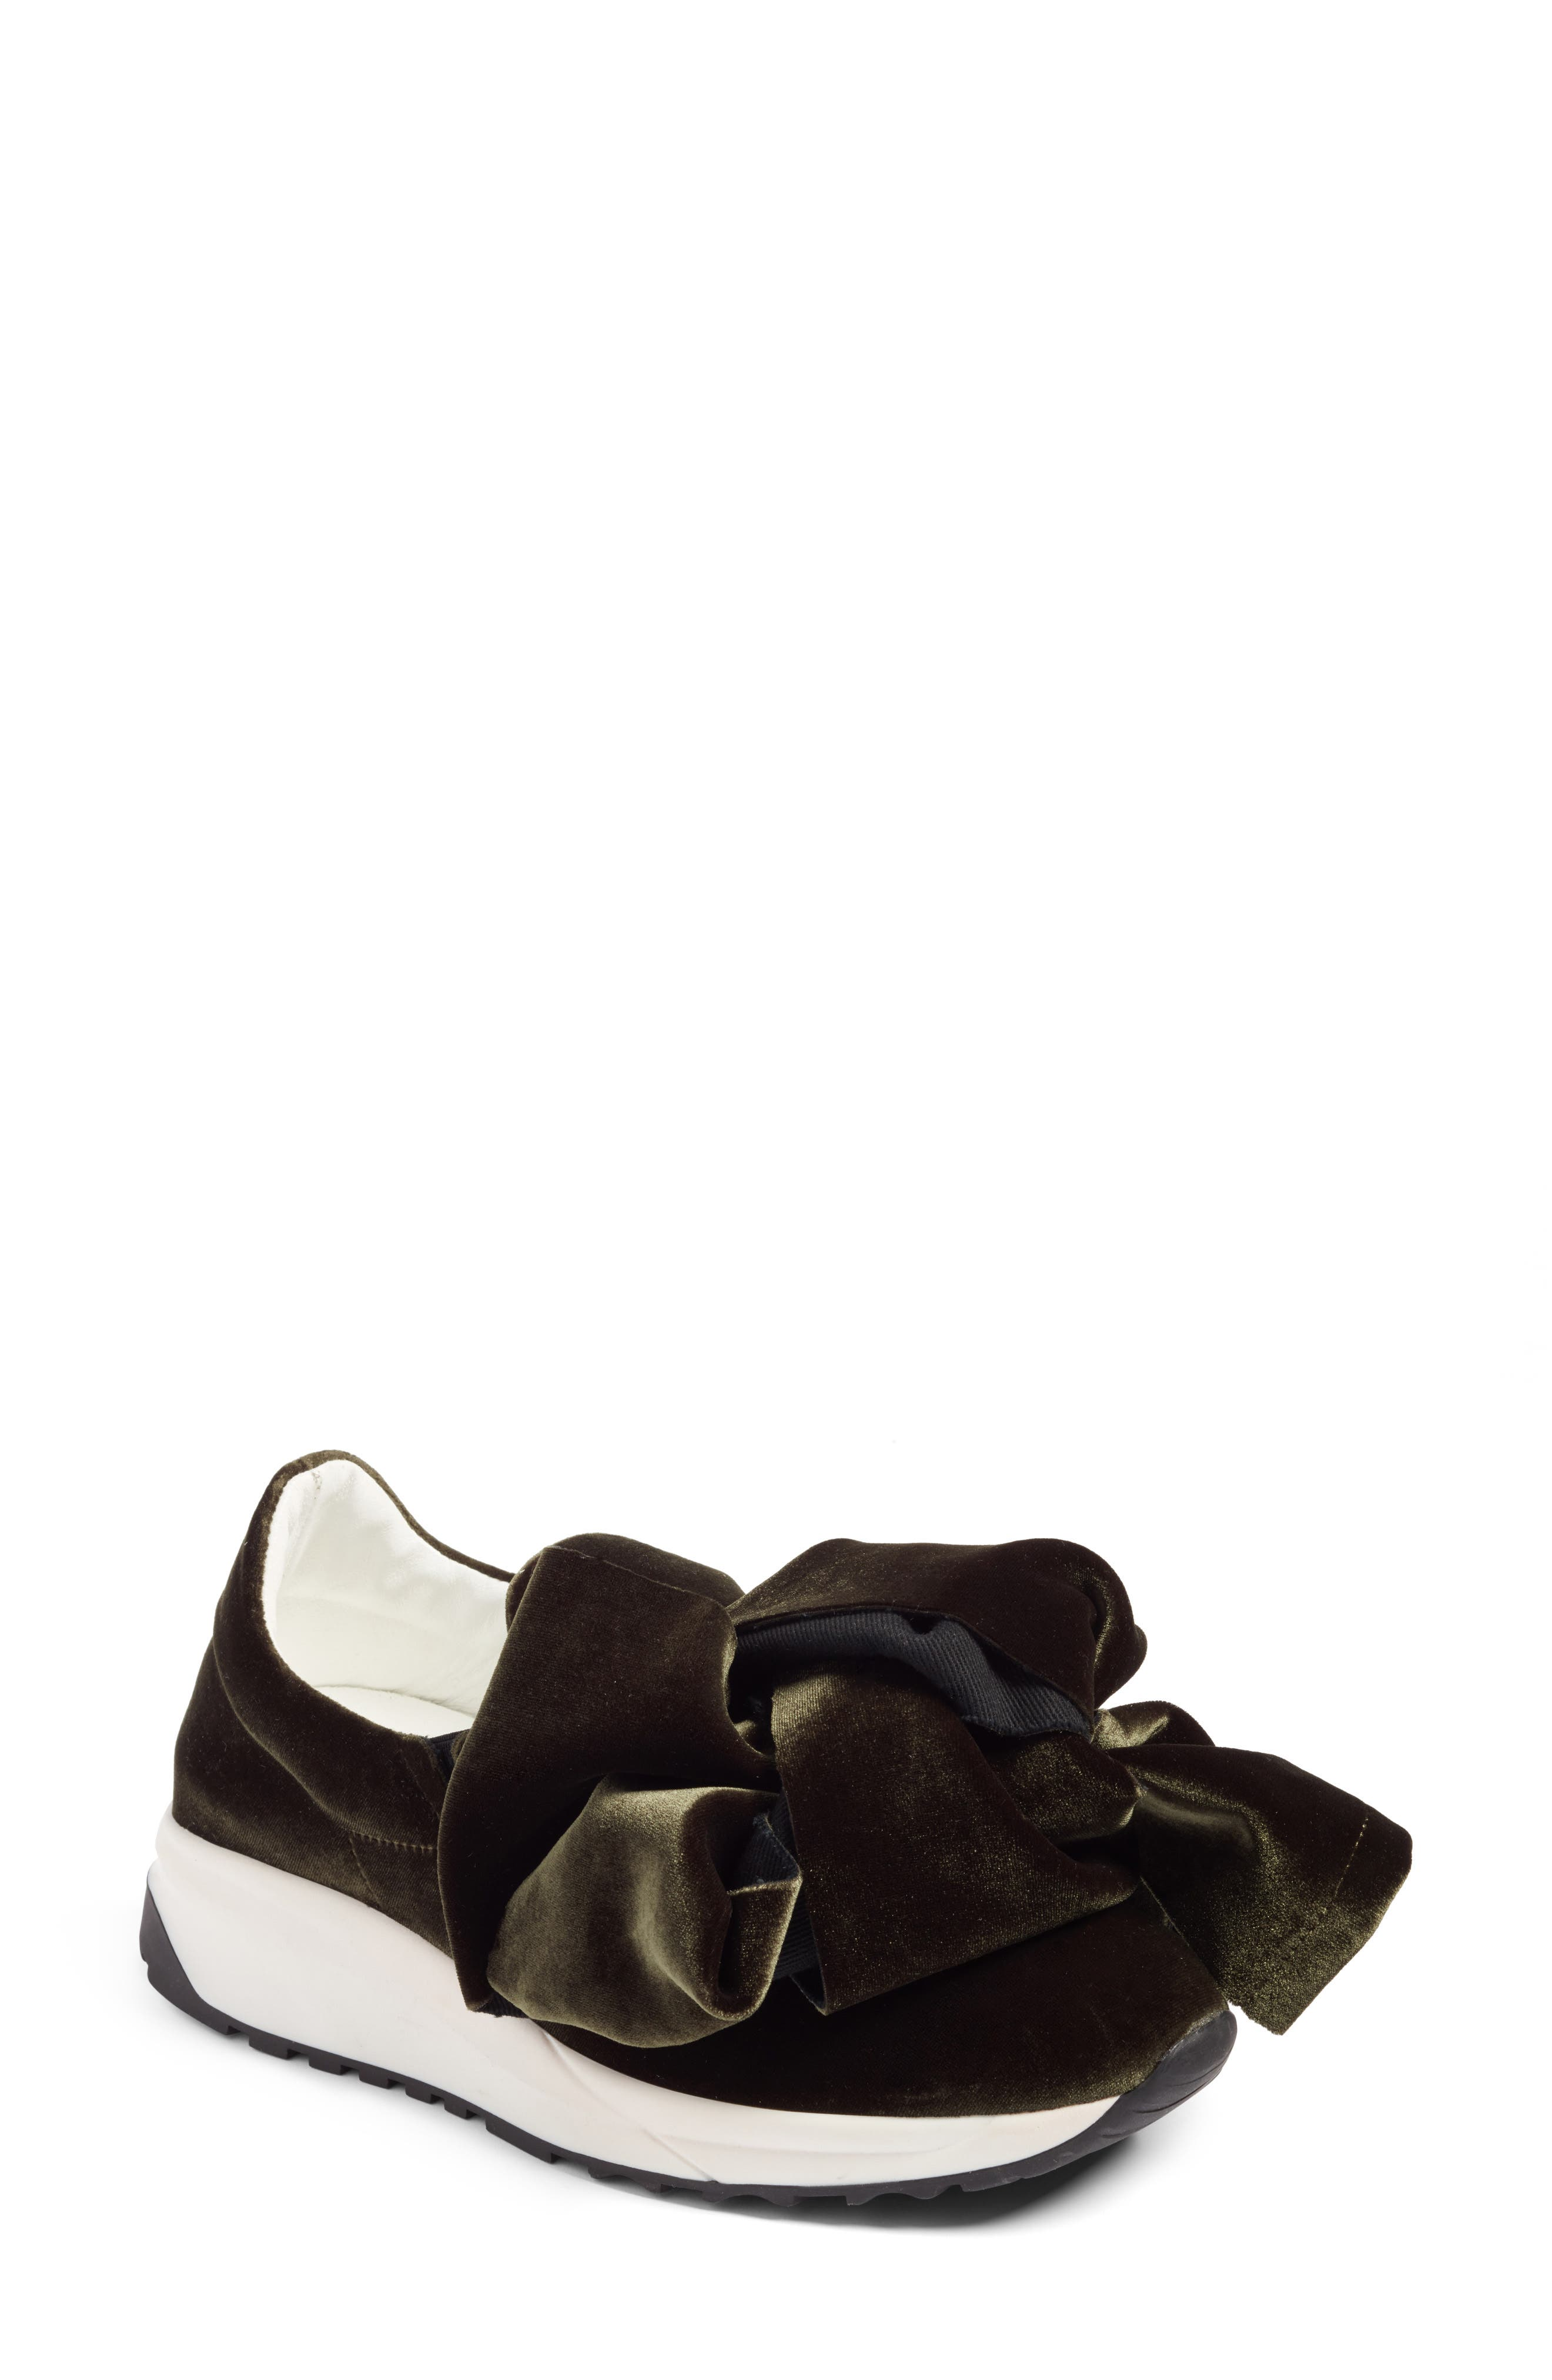 Knotted Slip-On Sneaker,                             Main thumbnail 1, color,                             300